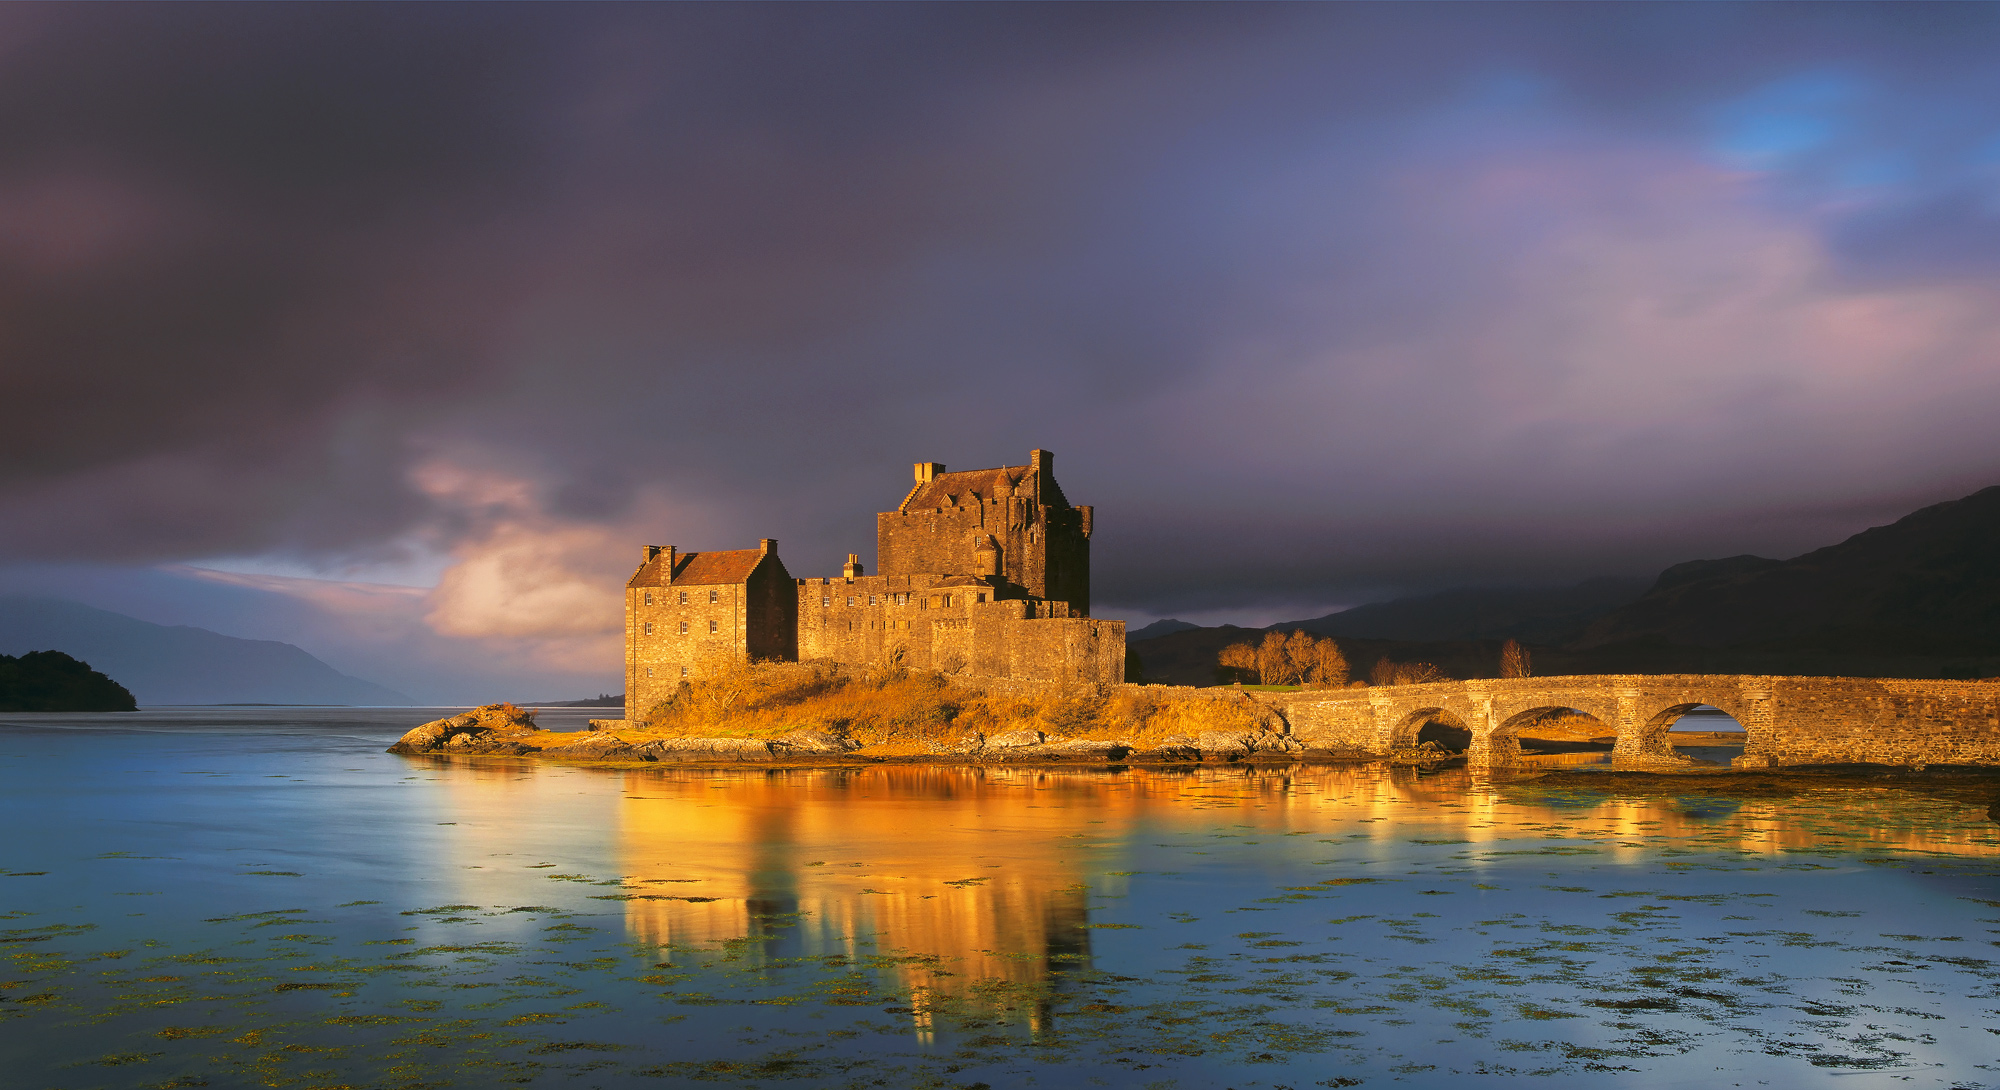 Golden light at sunrise struck the flanks of Eiean Donan Castle just seconds after a biblical deluge all but concealed the castle and the view beyond.